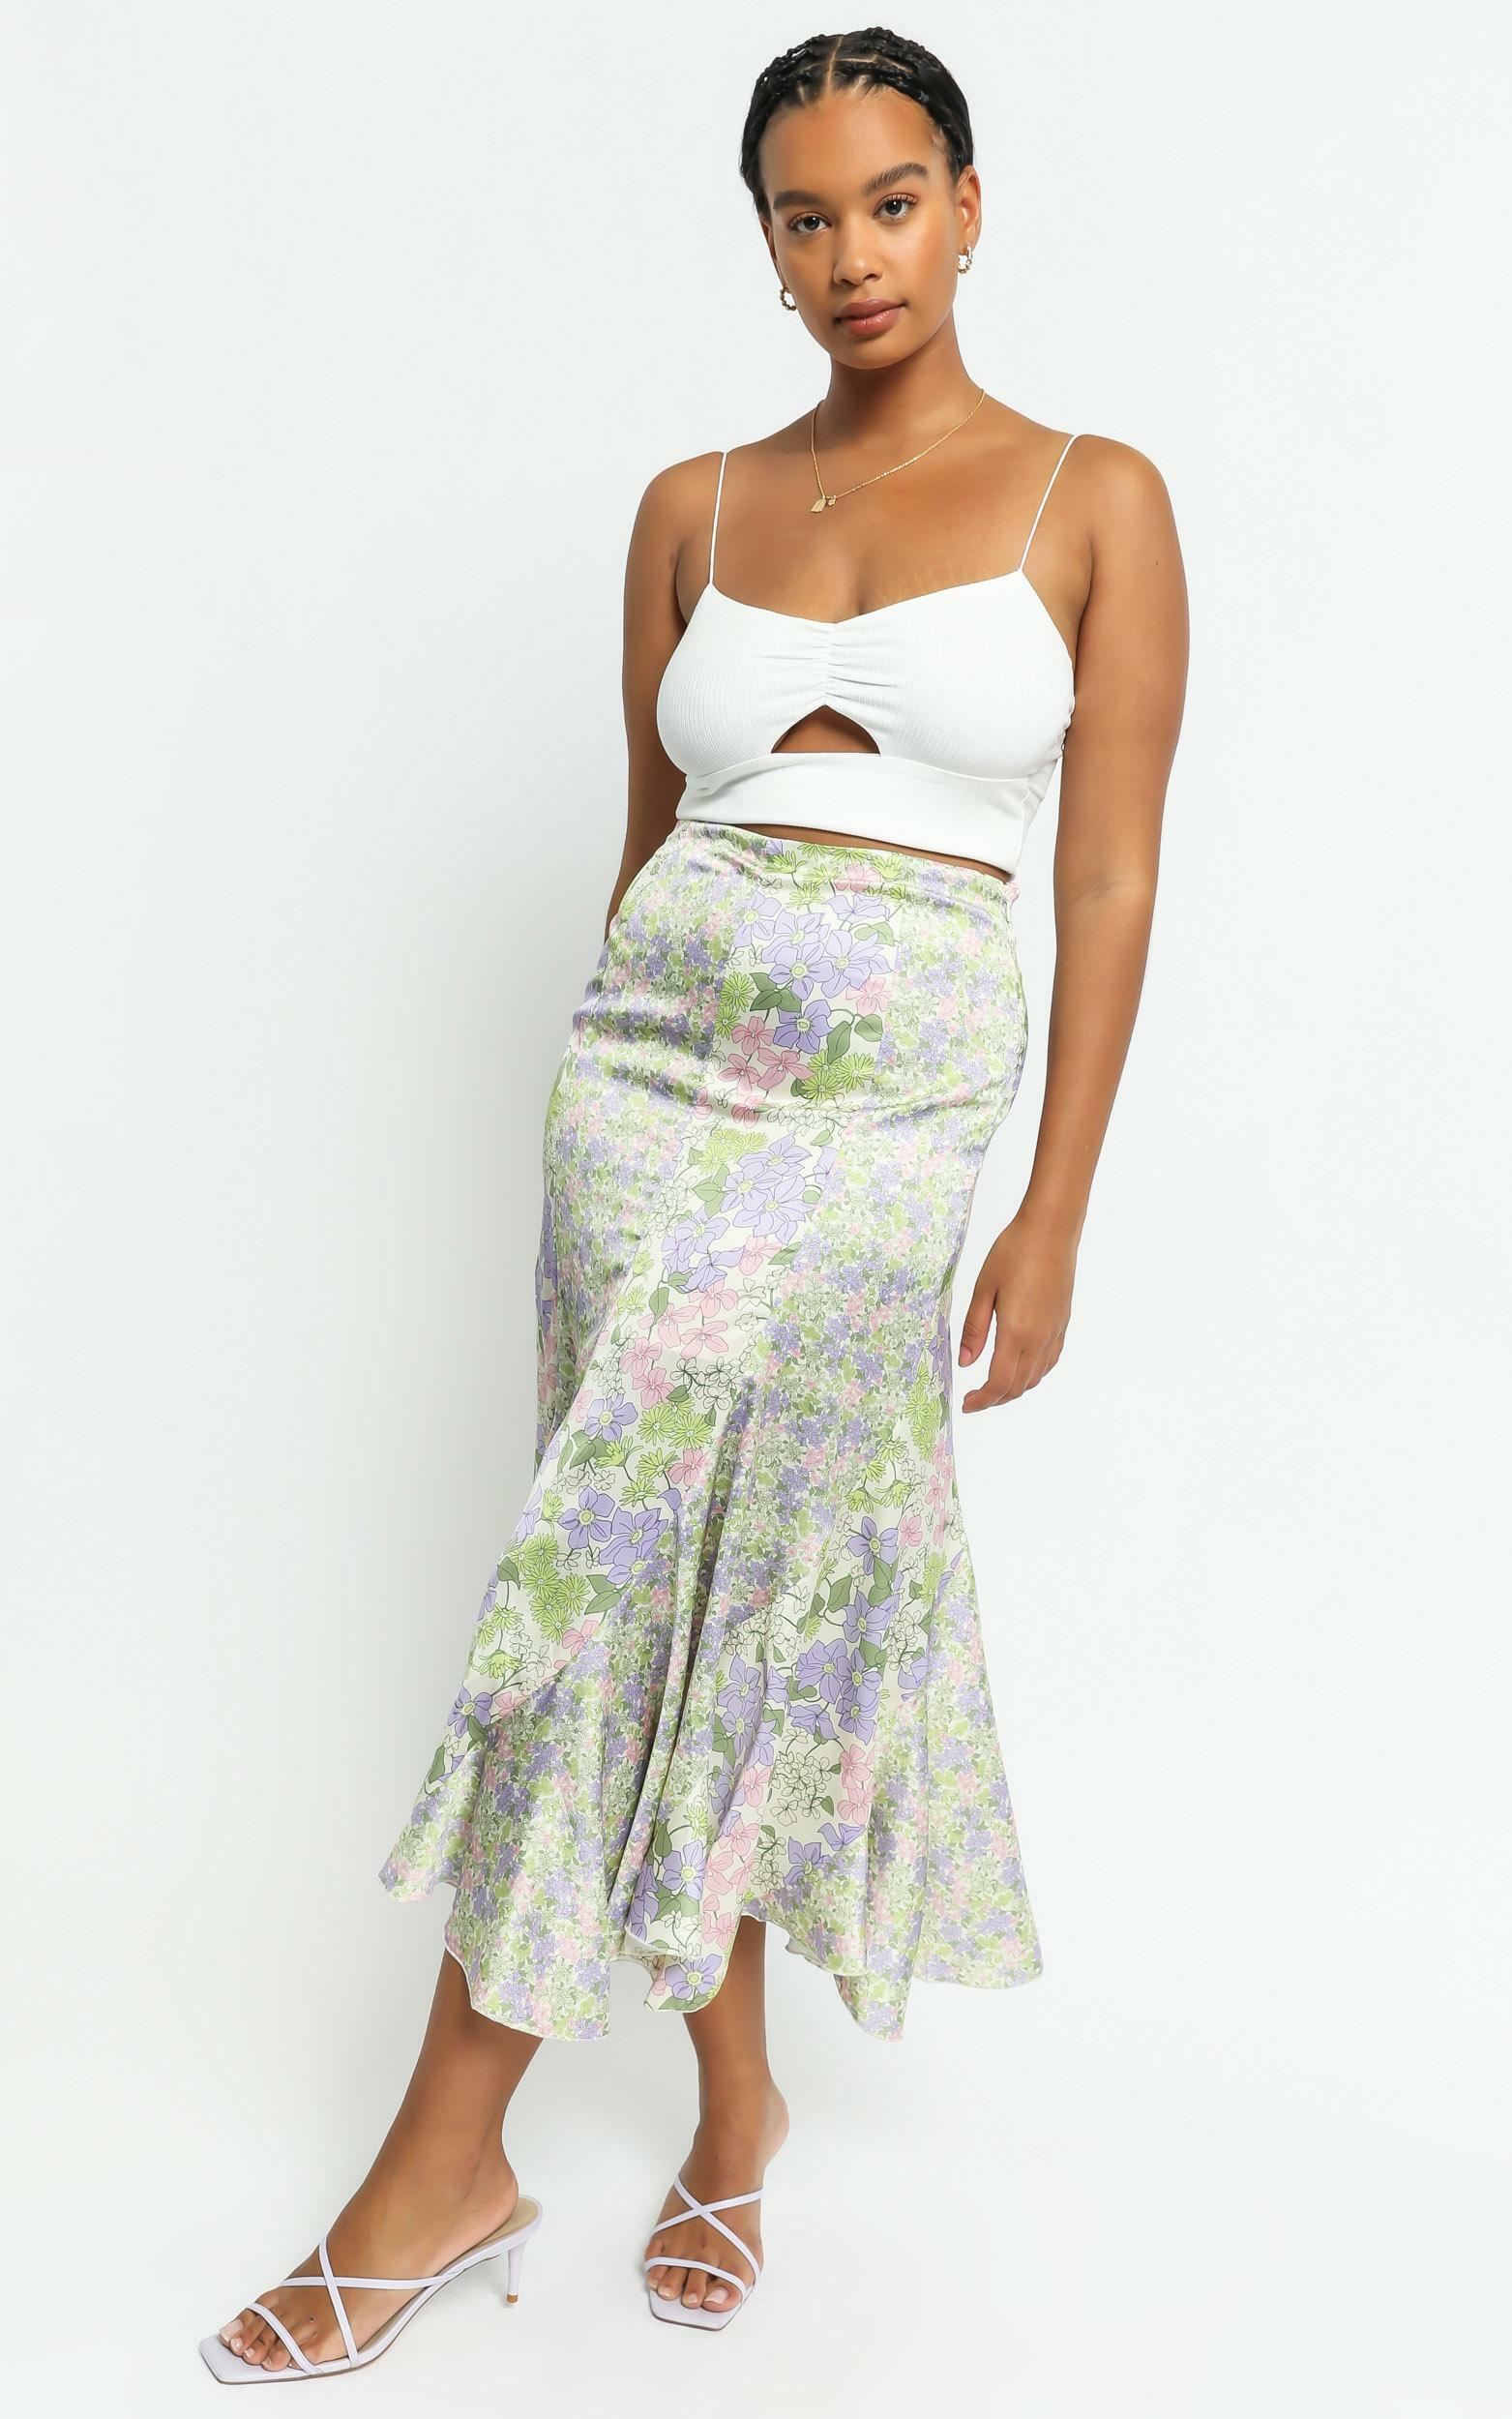 A Fool for you skirt in Garden Floral - 6 (XS), Green, hi-res image number null